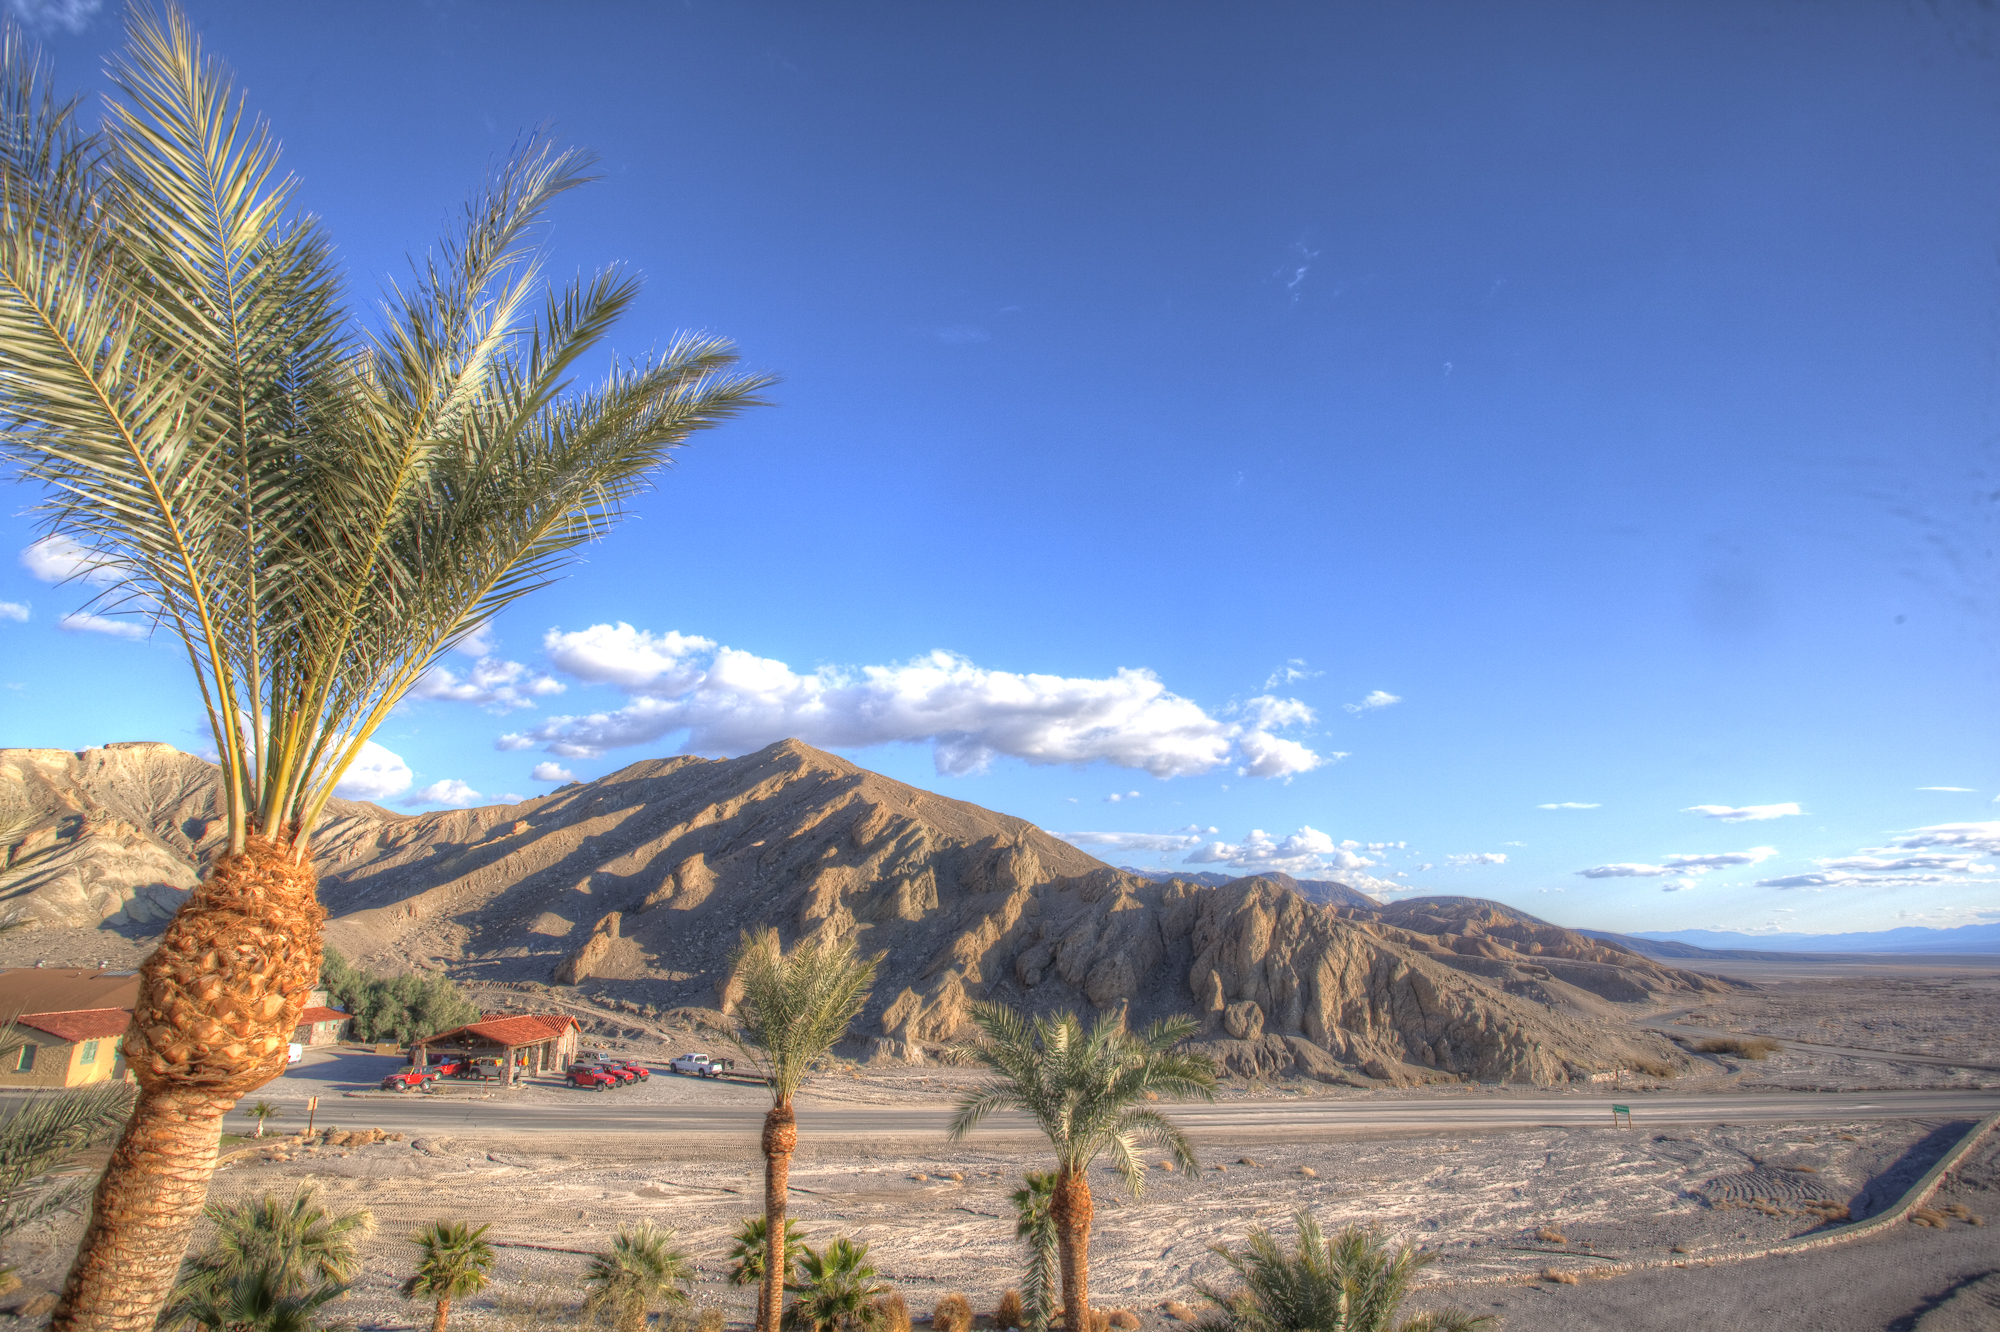 If the view from the rear Window of my room at Furnace Creek Inn in Death Valley can be this, imagine what kind of photographs we are going to make in expedition to Stovepipe well tomorrow.